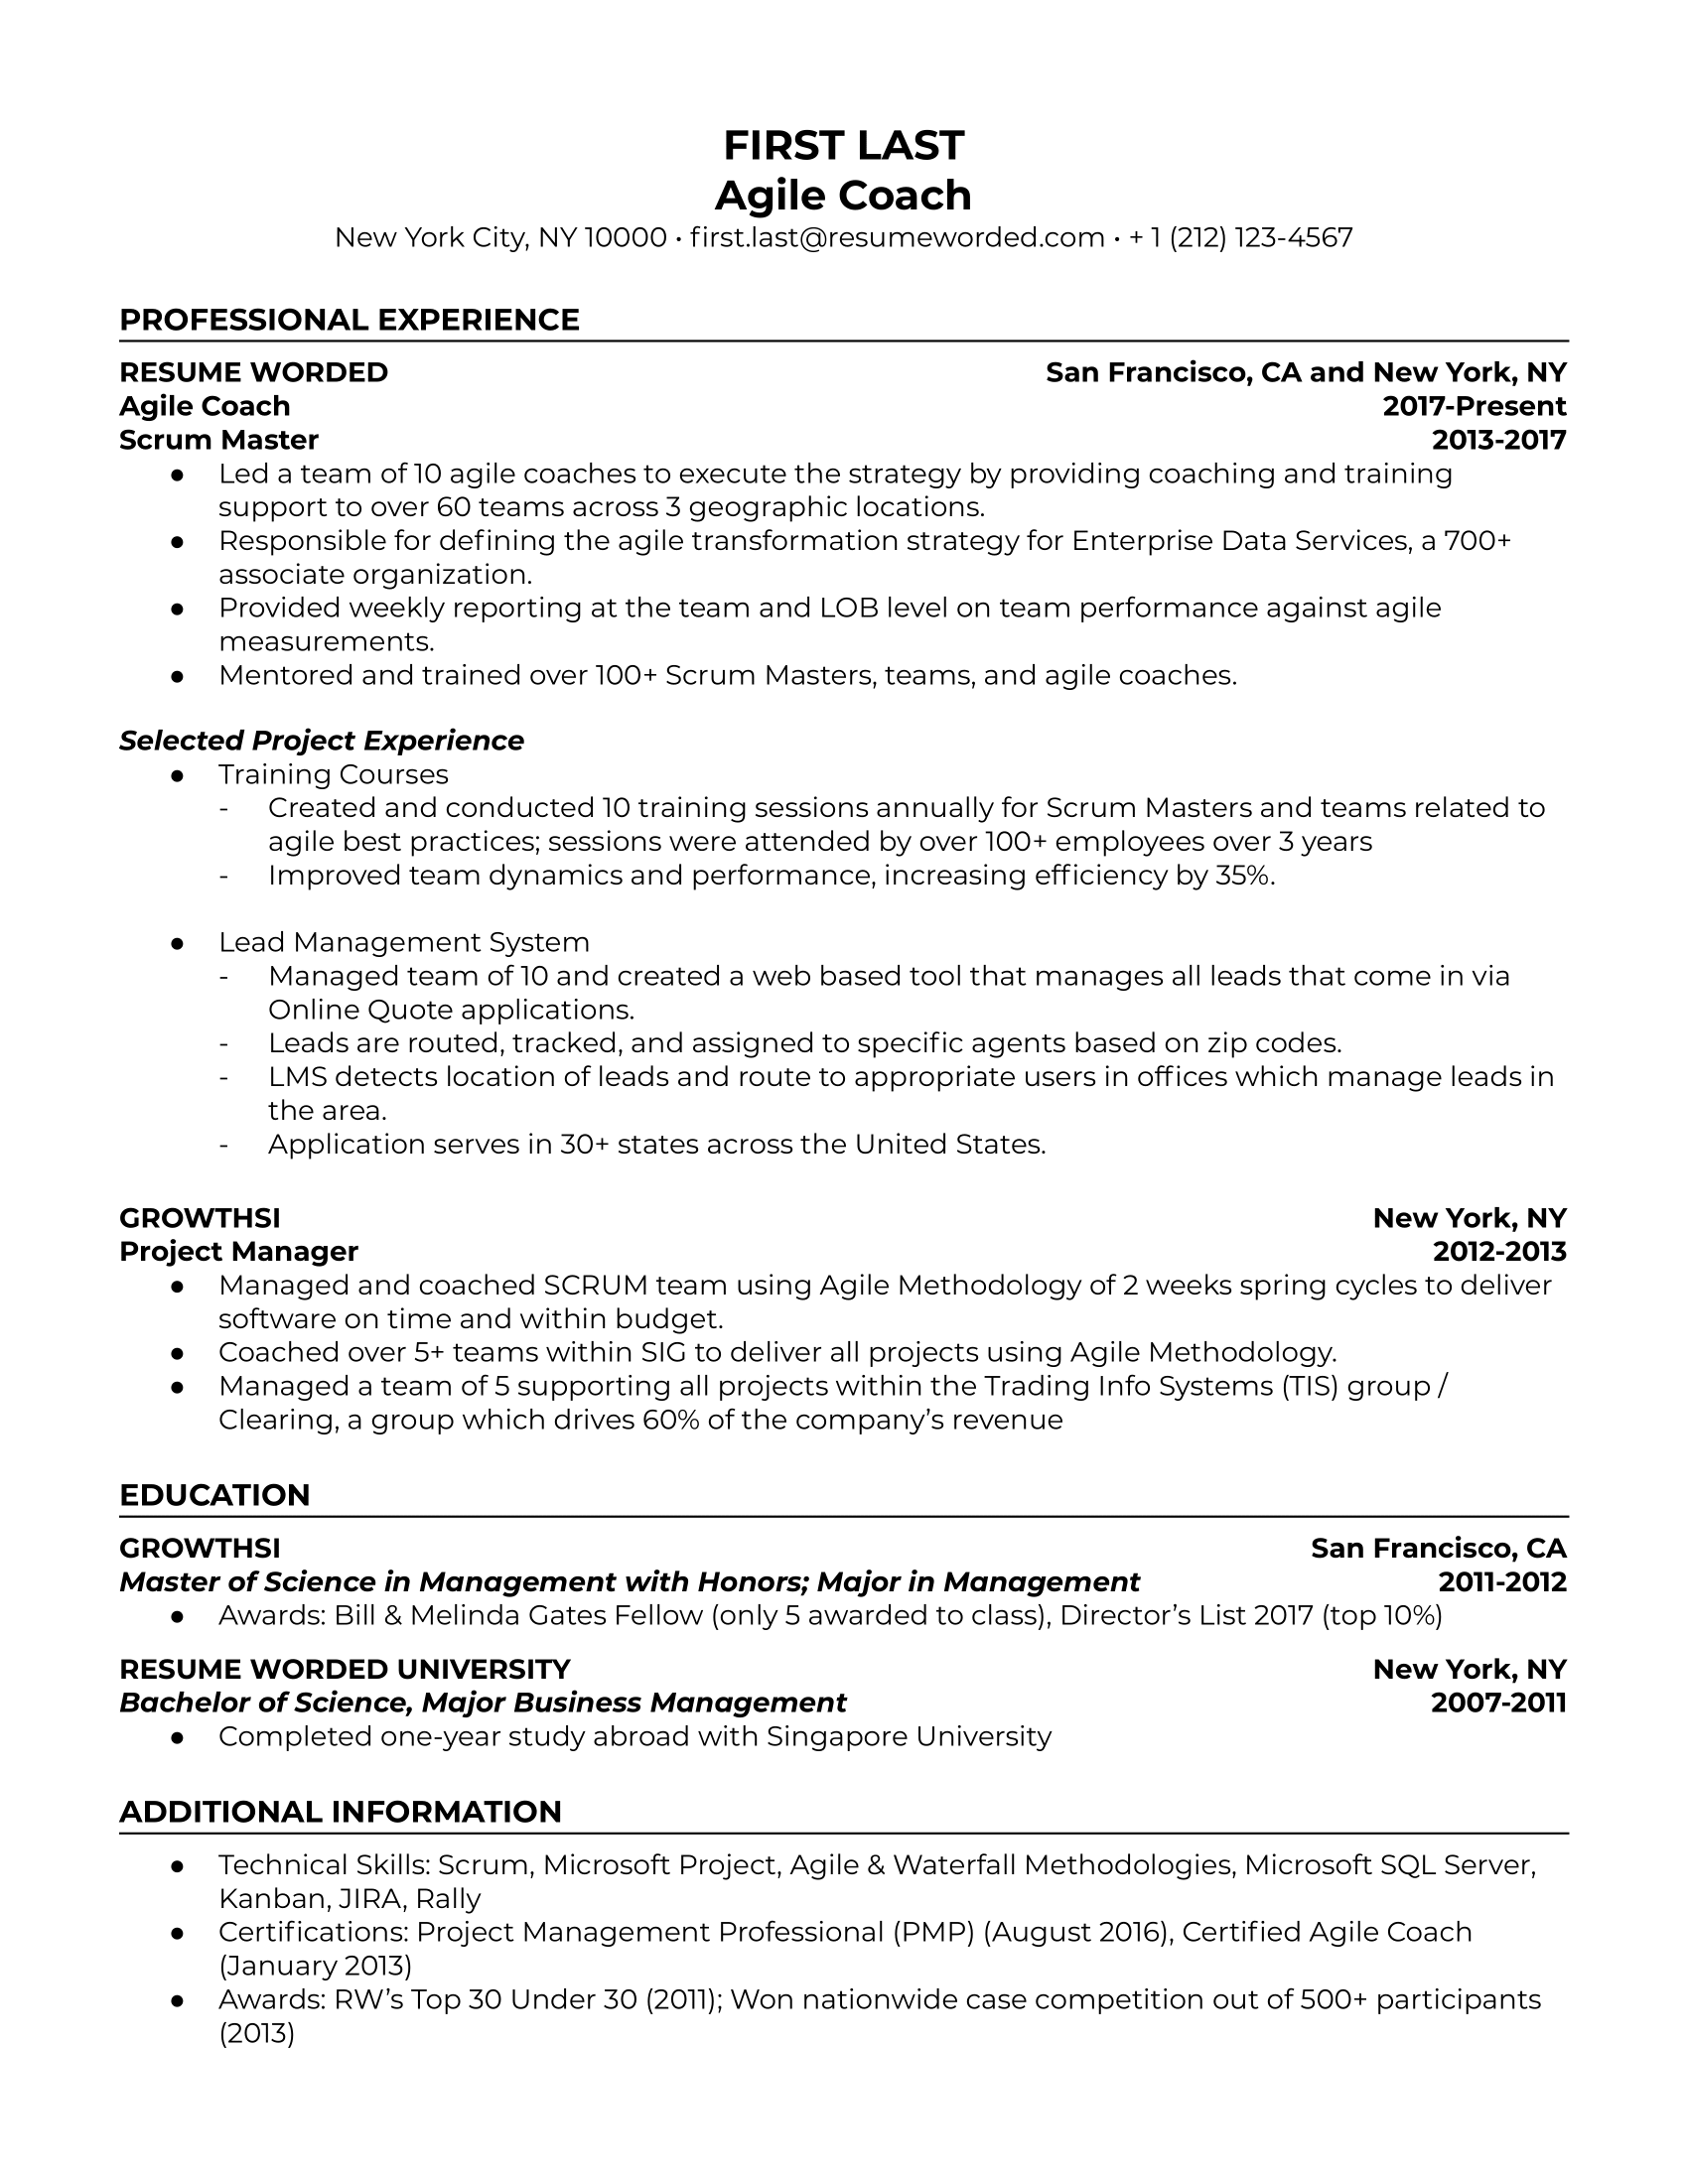 Agile Coach Resume Sample